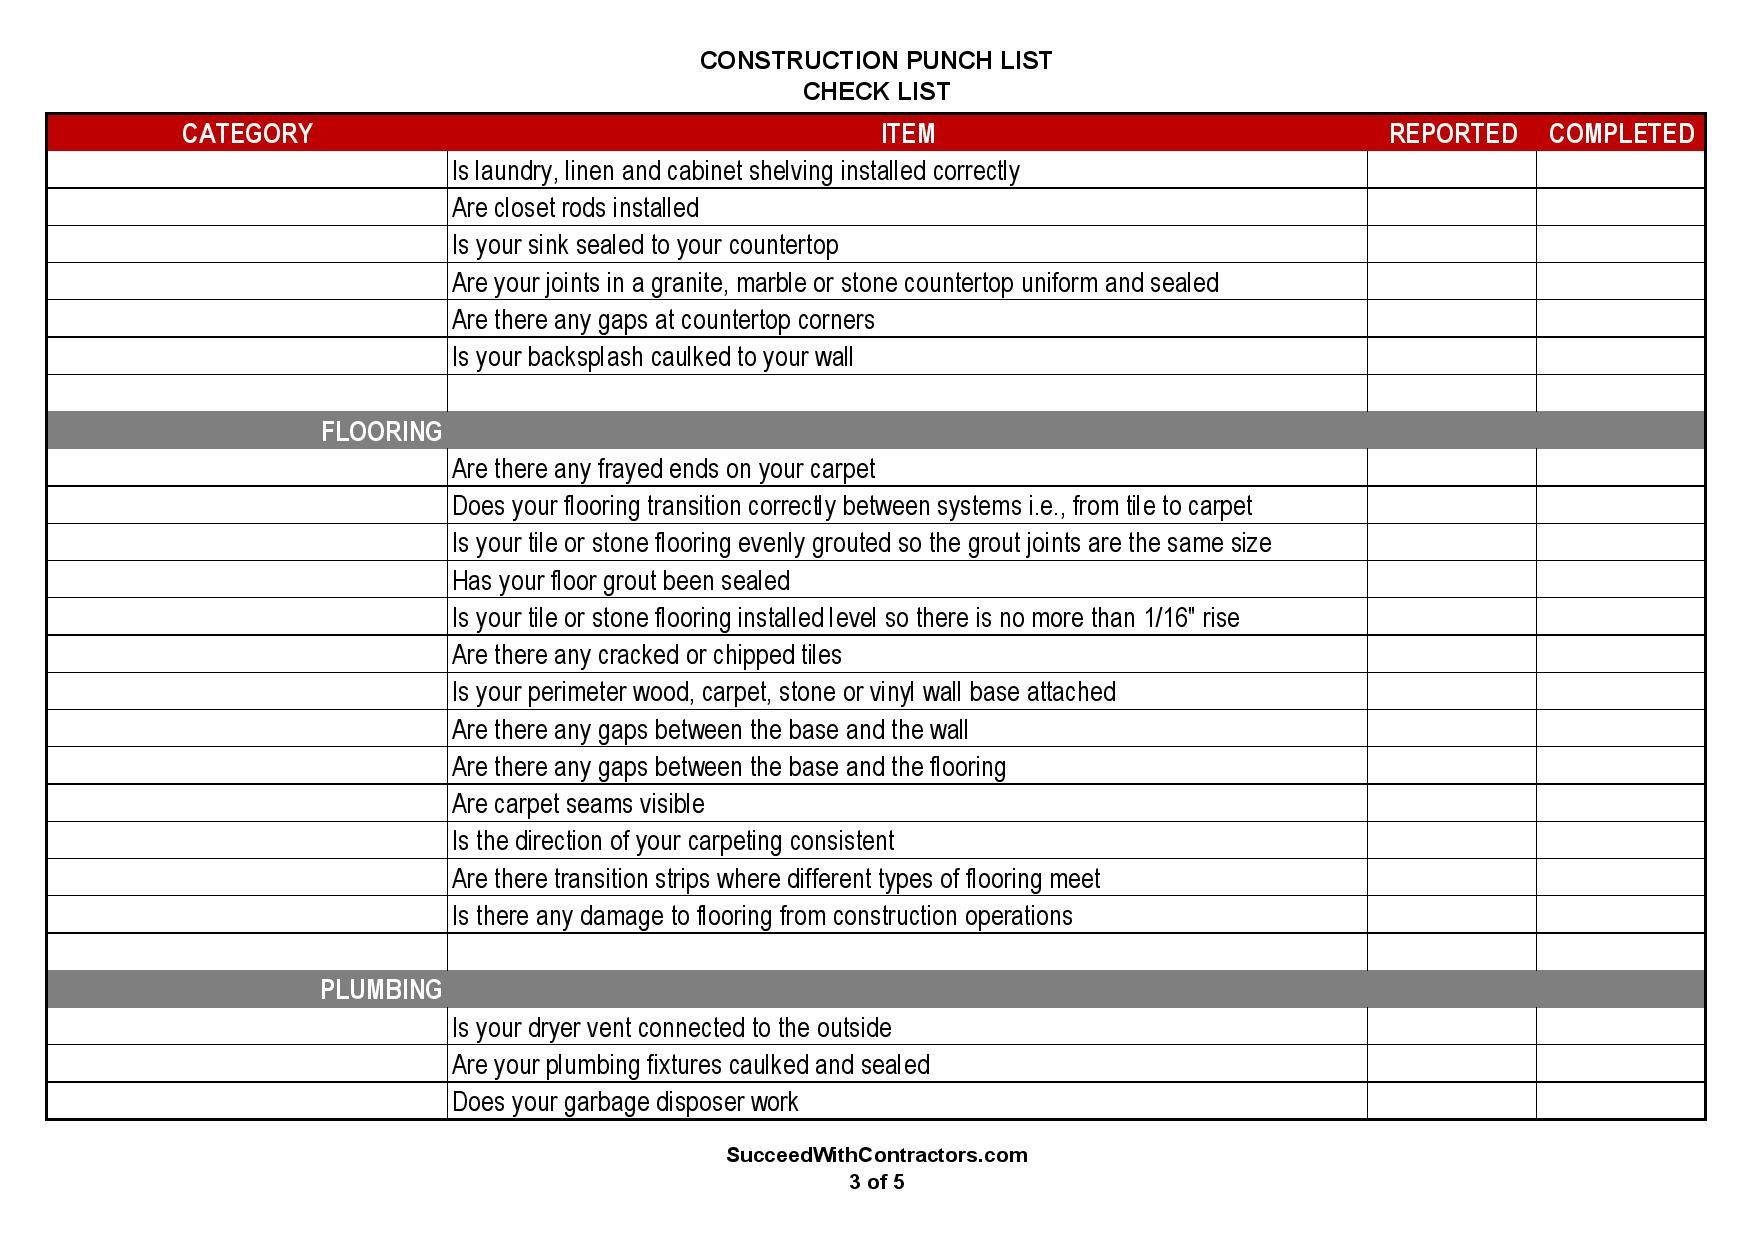 000 Excellent Construction Punch List Template Word Example Full